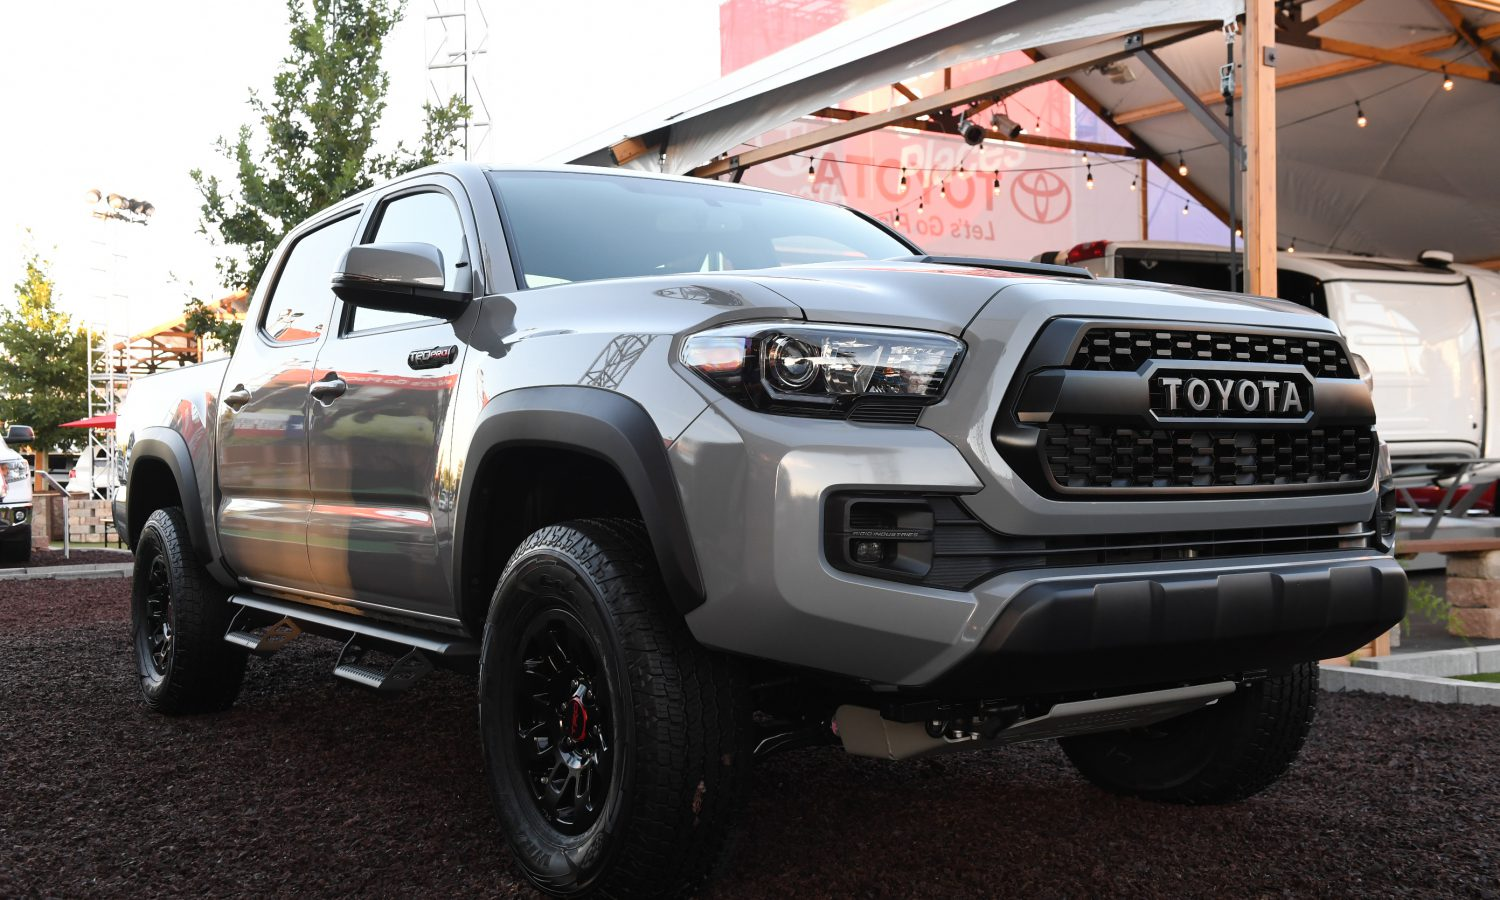 Toyota Provides Something for Everyone at the State Fair of Texas  with Truck Debuts, Soccer Stars and Fun for the Entire Family